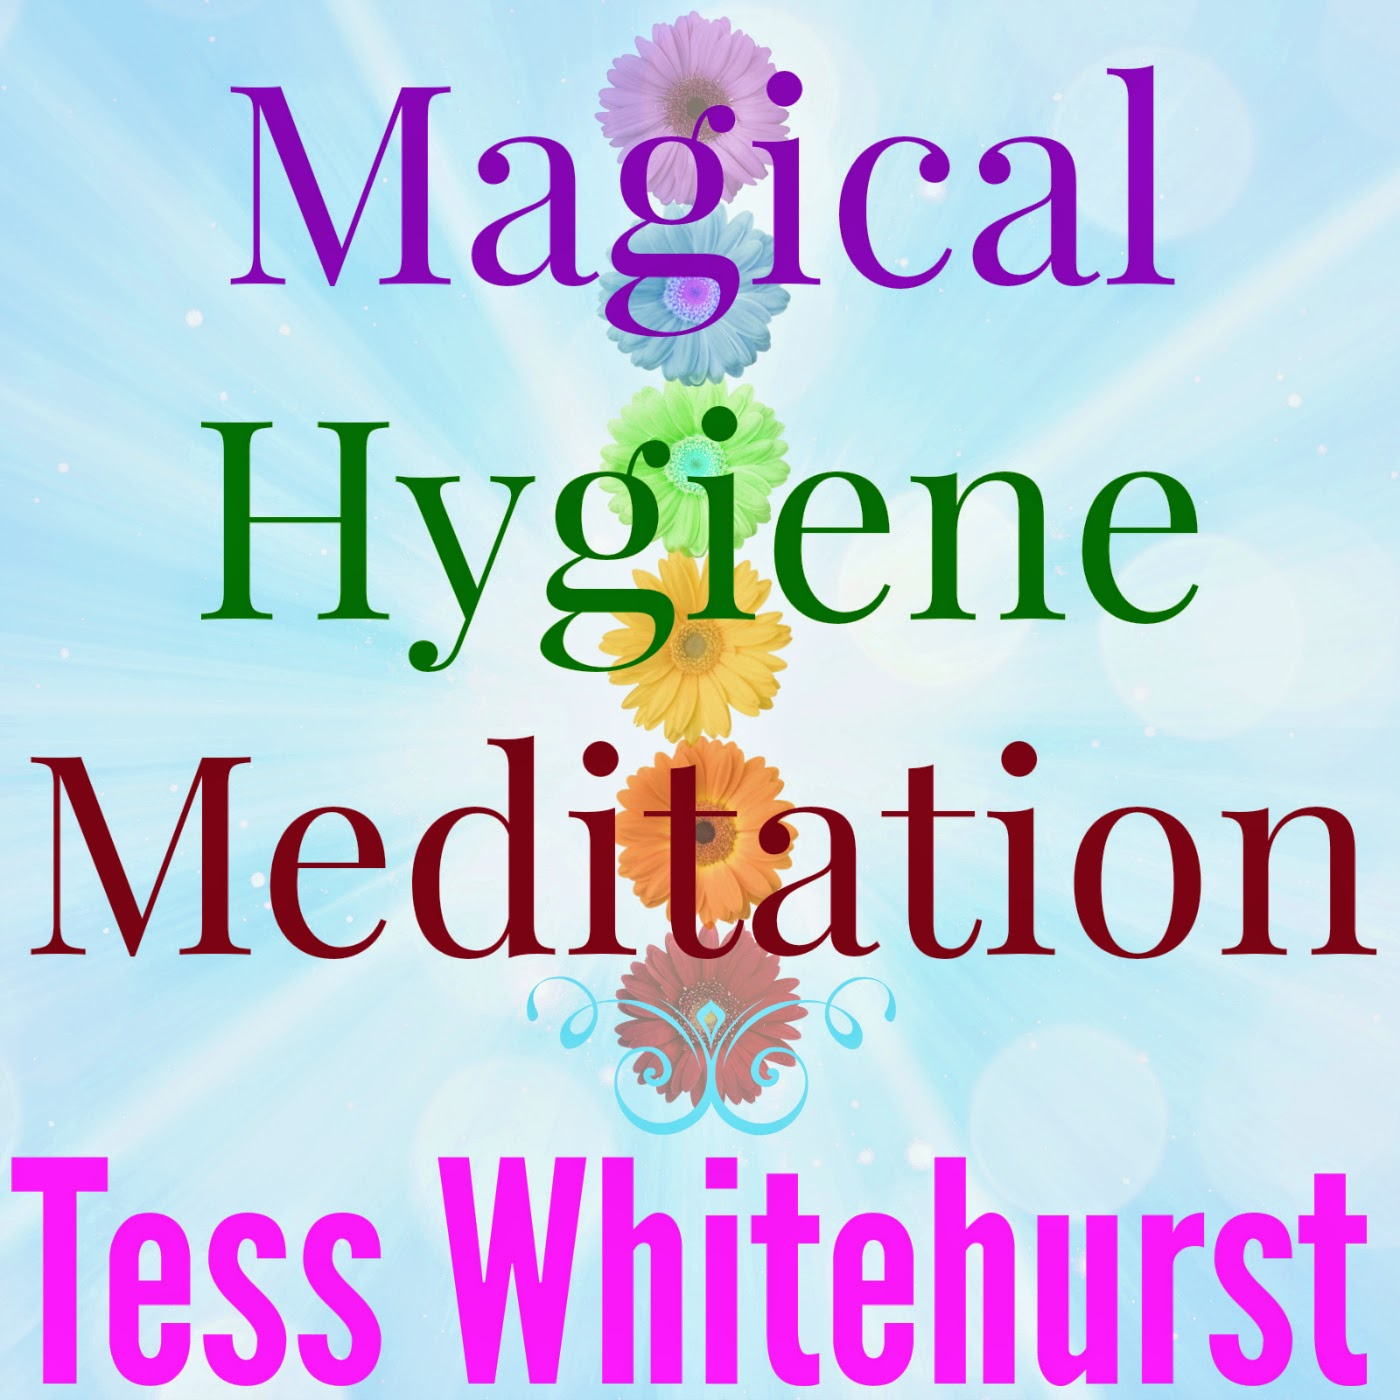 Check out my guided meditation! $2.99!